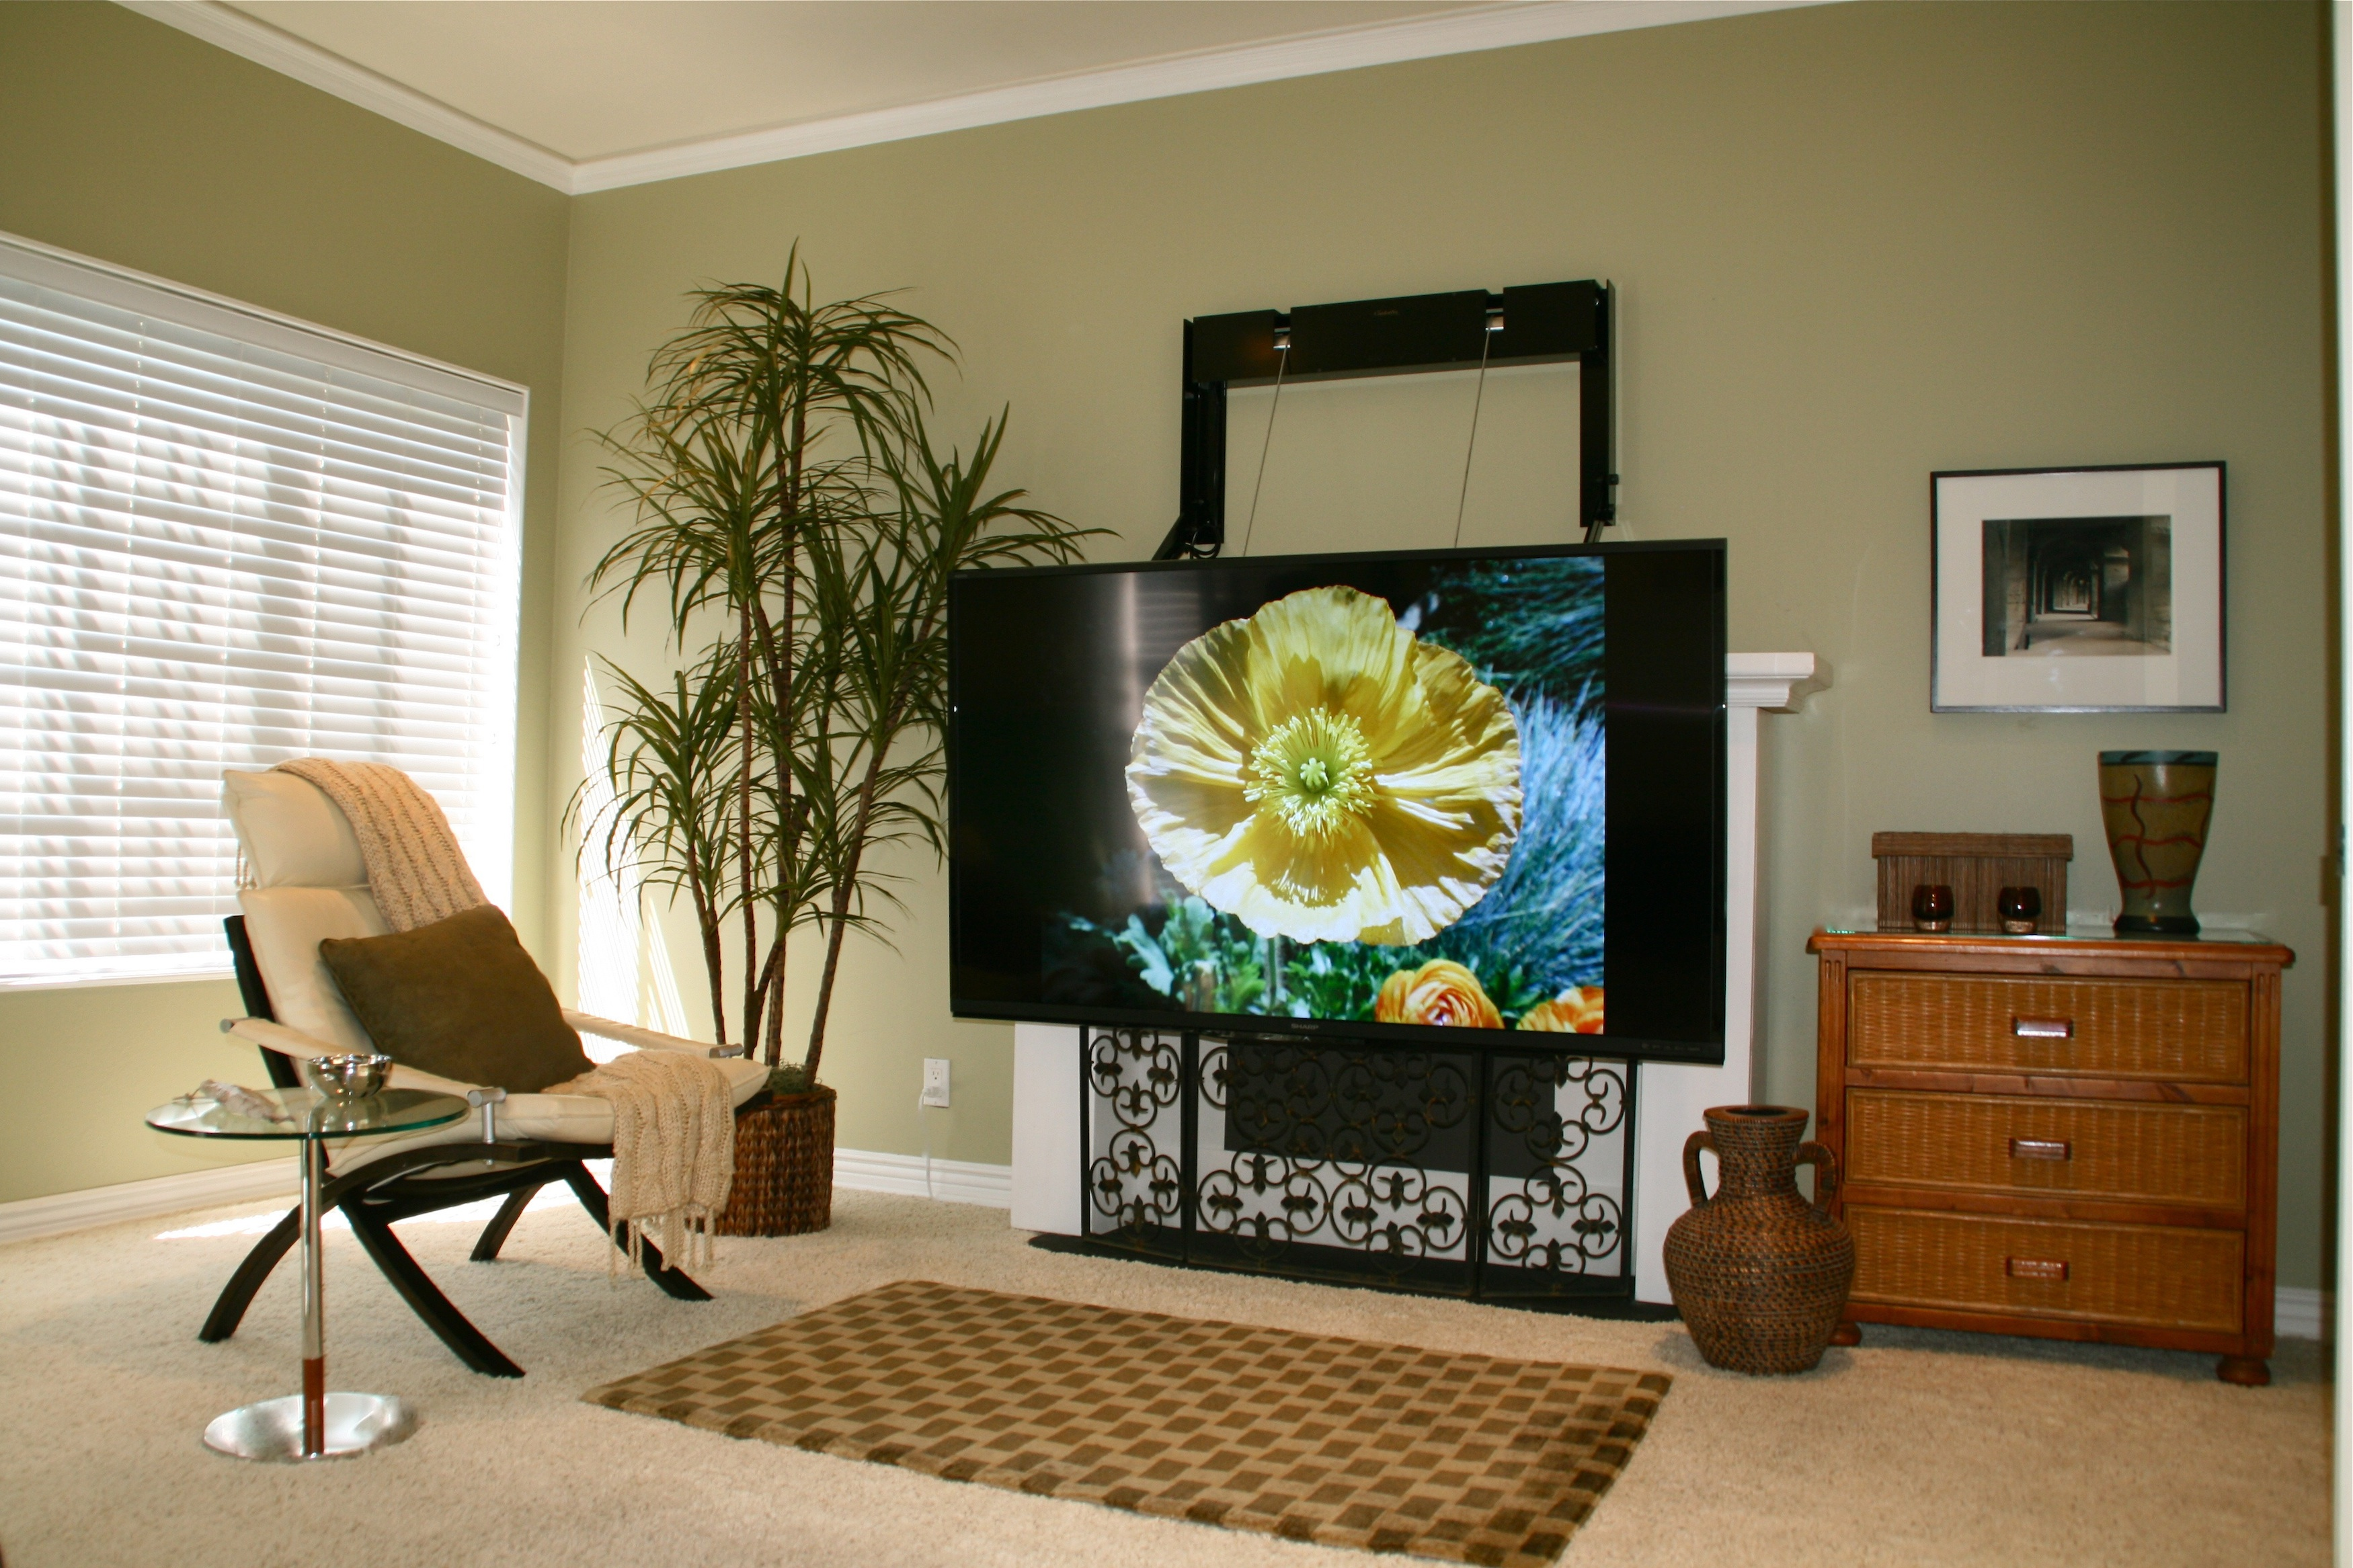 New flatscreen mount provides perfect viewing experience for Comfortvu motorized tv mount